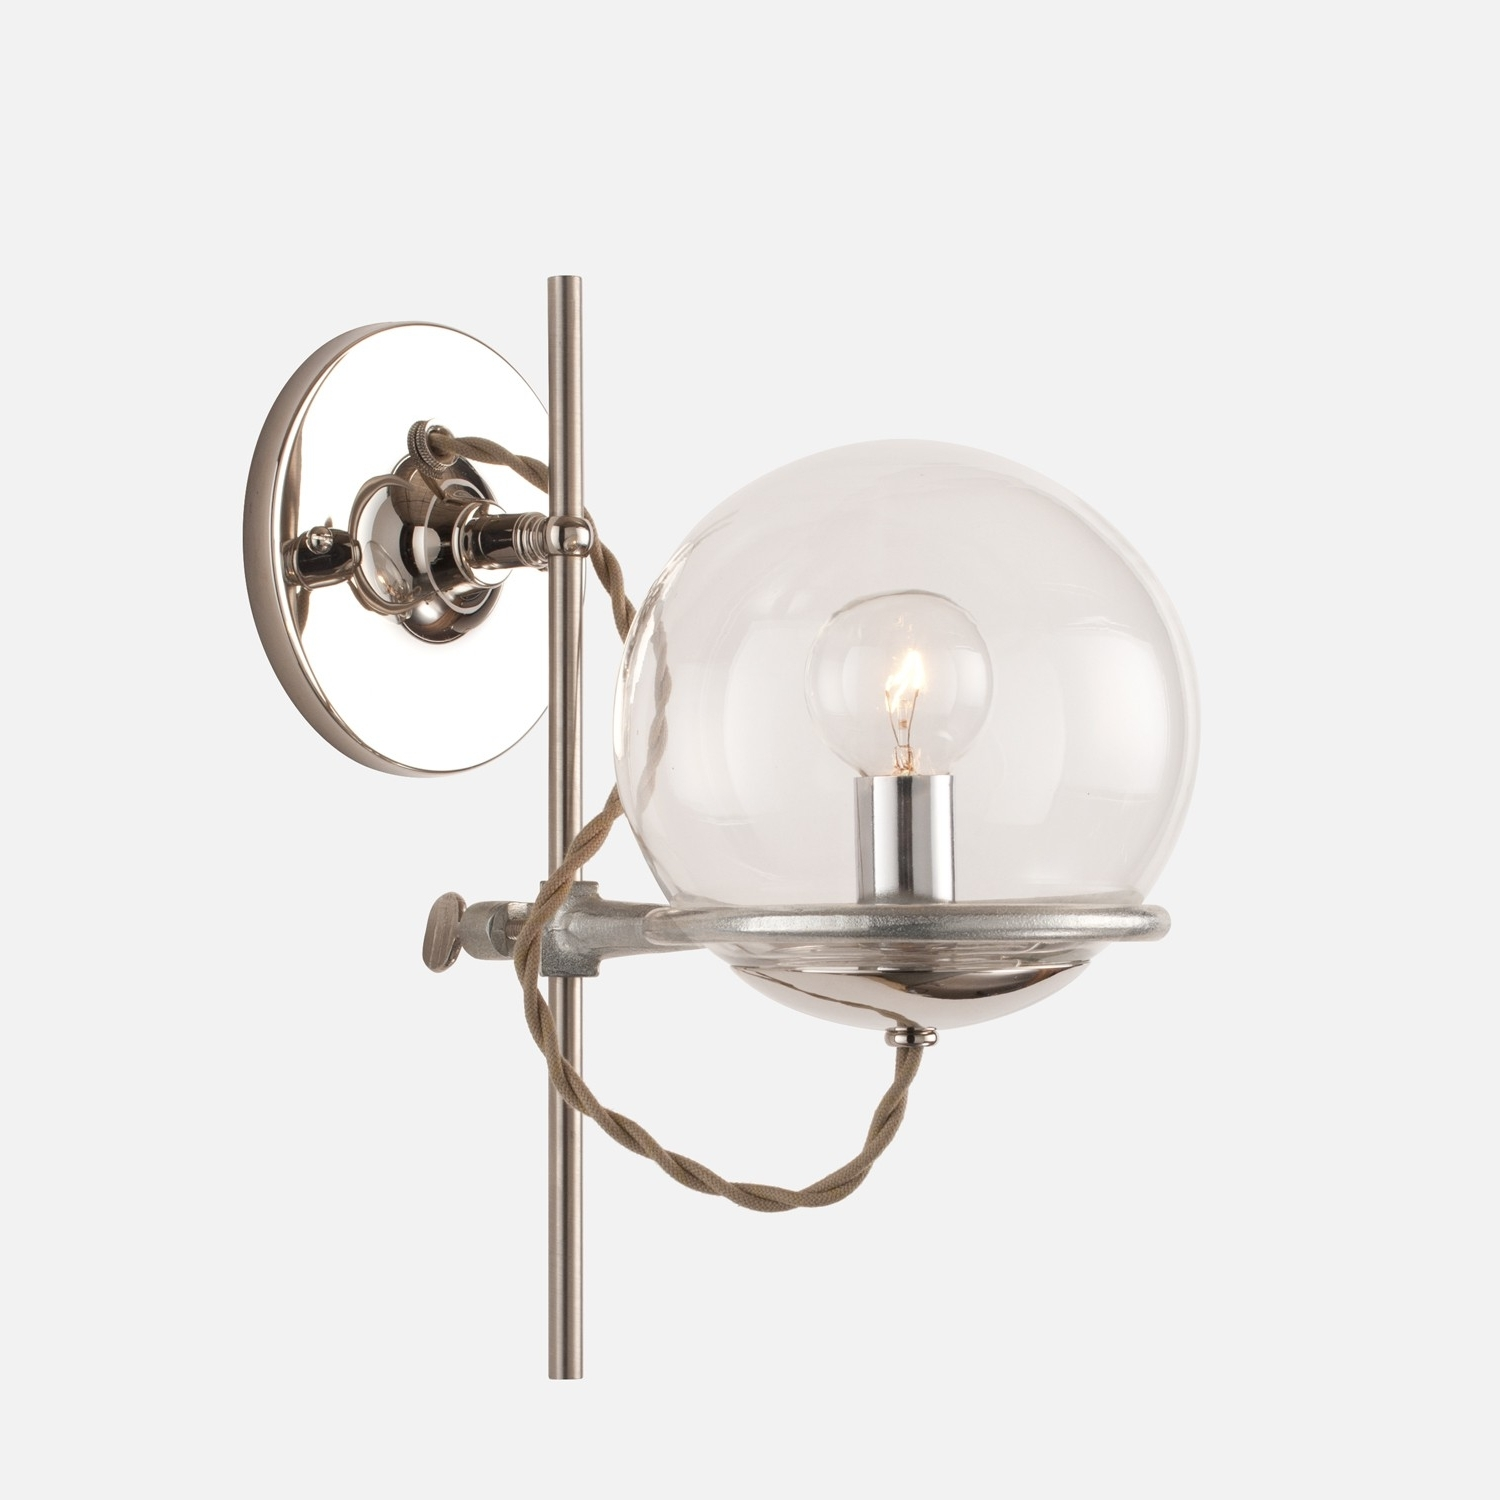 Bathrooms Design : 36 Inch Bathroom Light Fixture Home Depot Bath For 2018 Outdoor Wall Lights With Electrical Outlet (View 4 of 20)